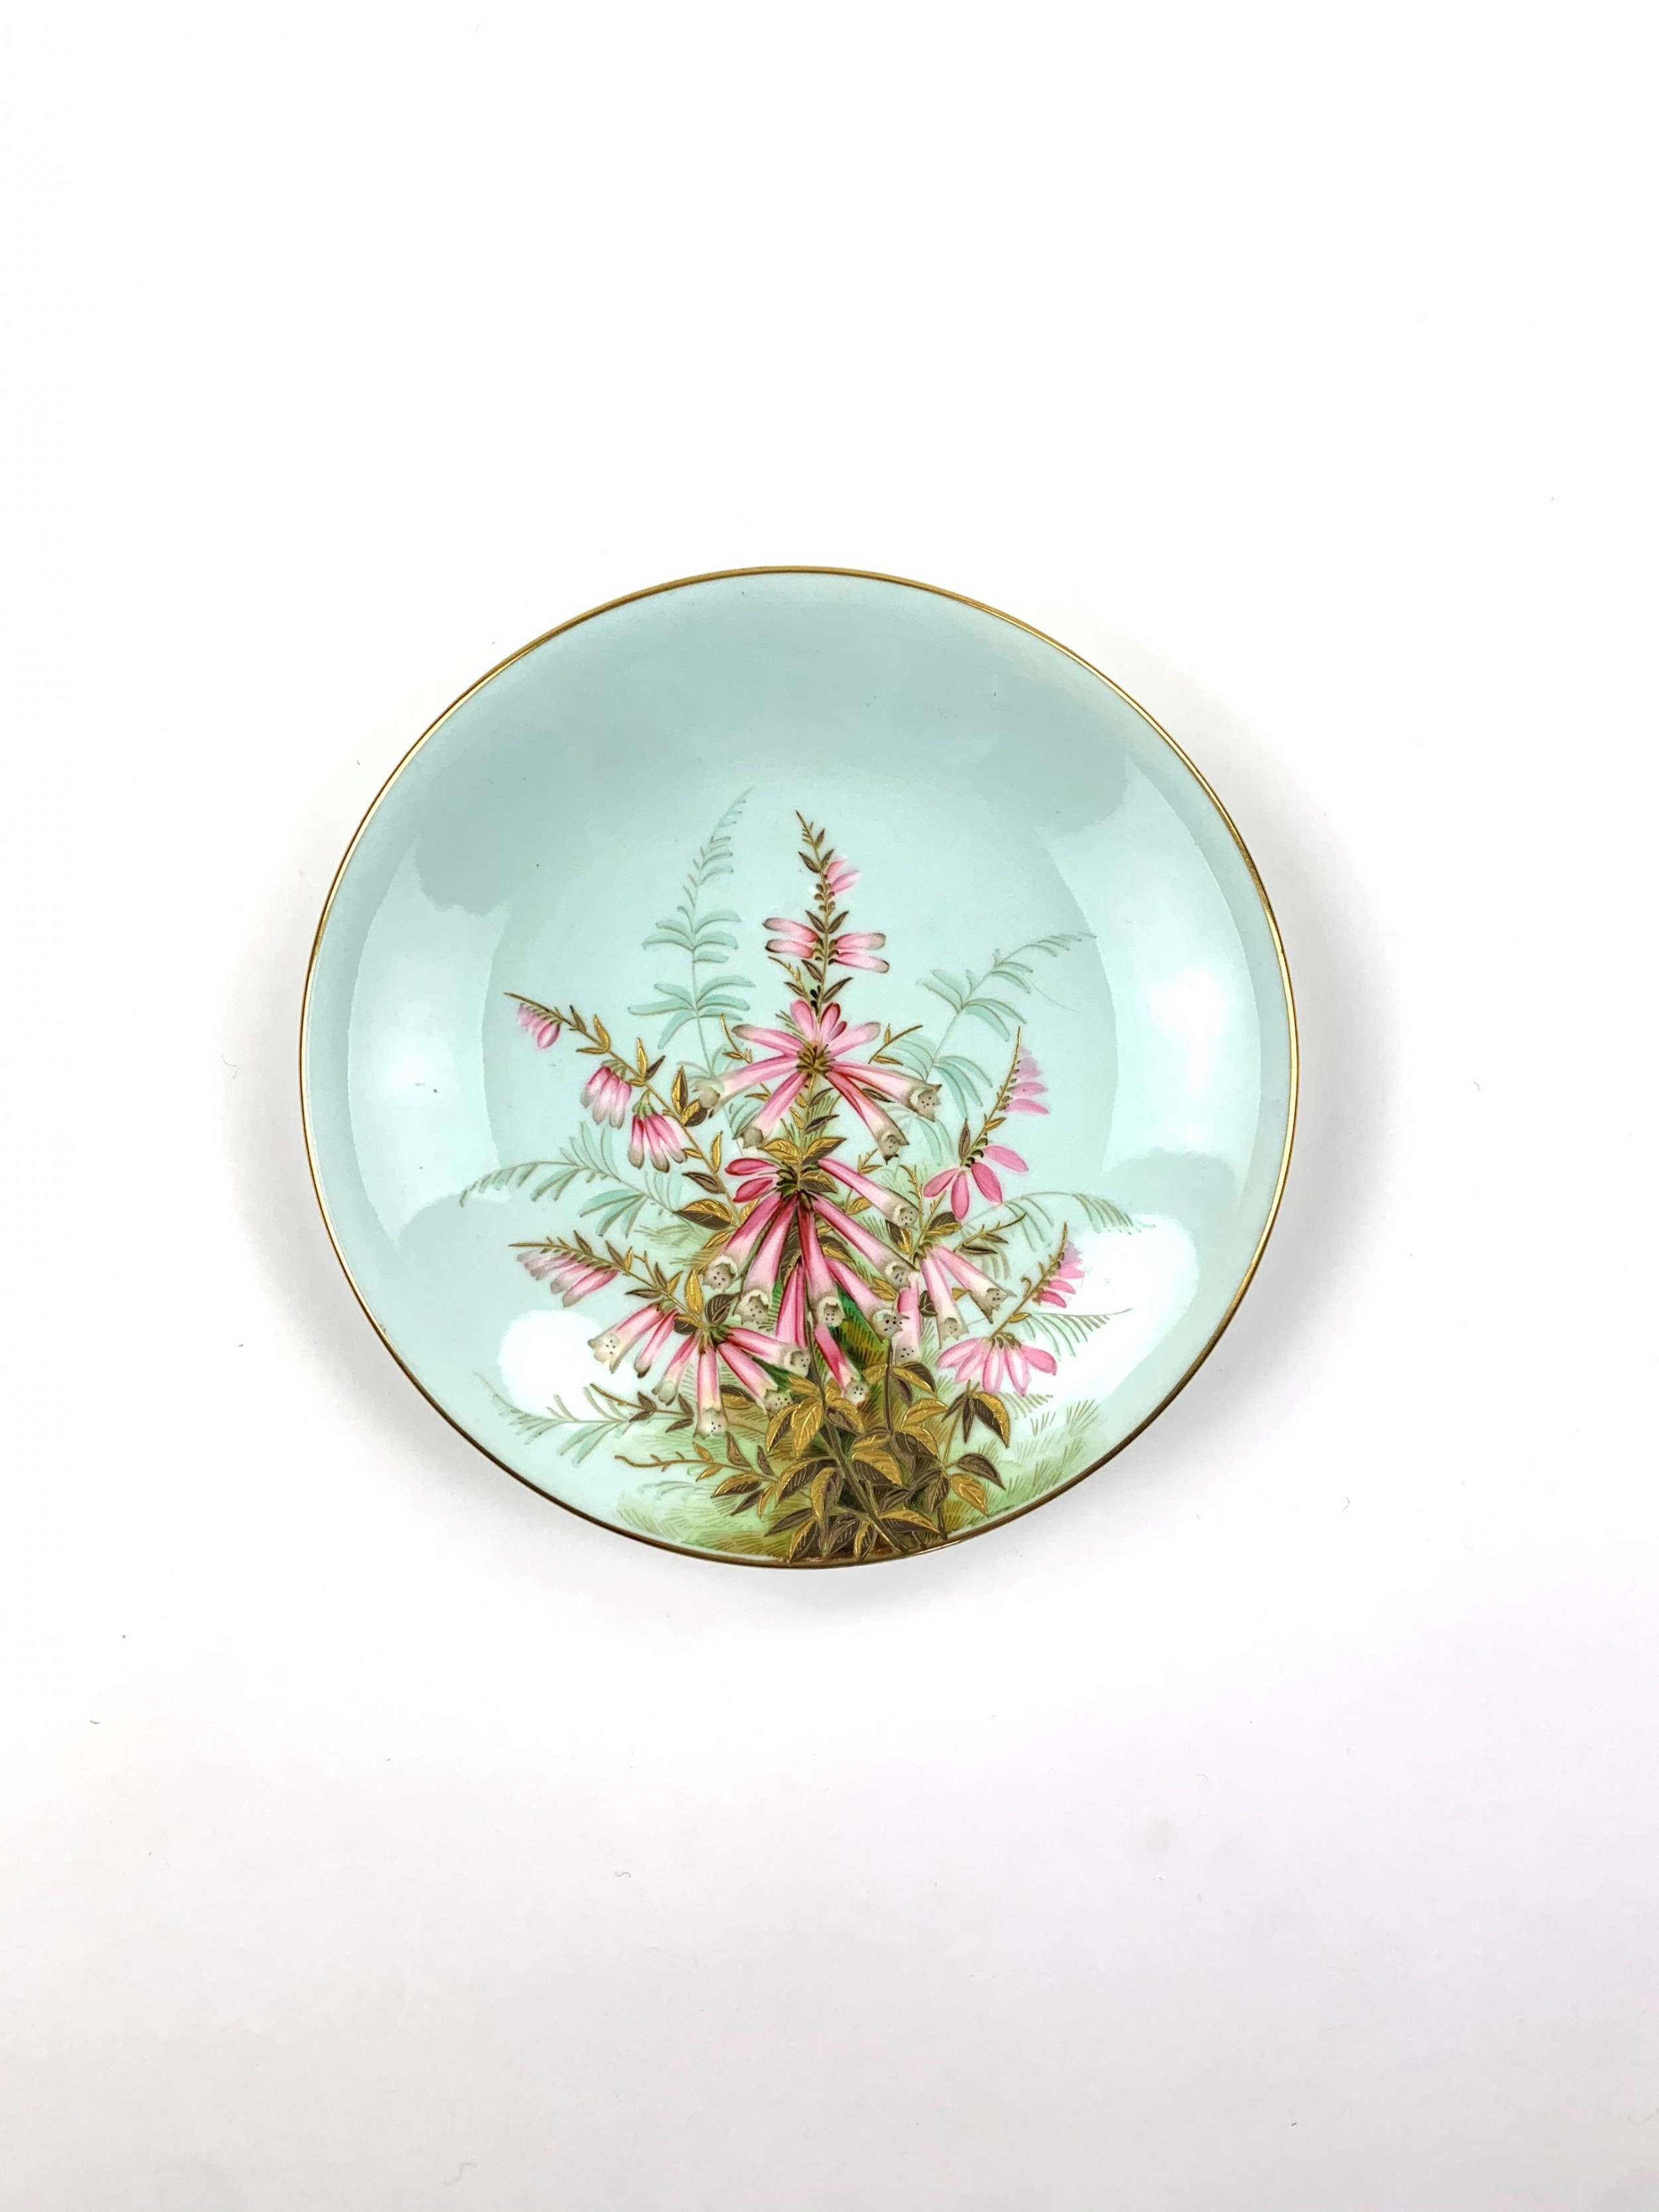 ceramic royal worcester plate 1883 hand painted by george hundley